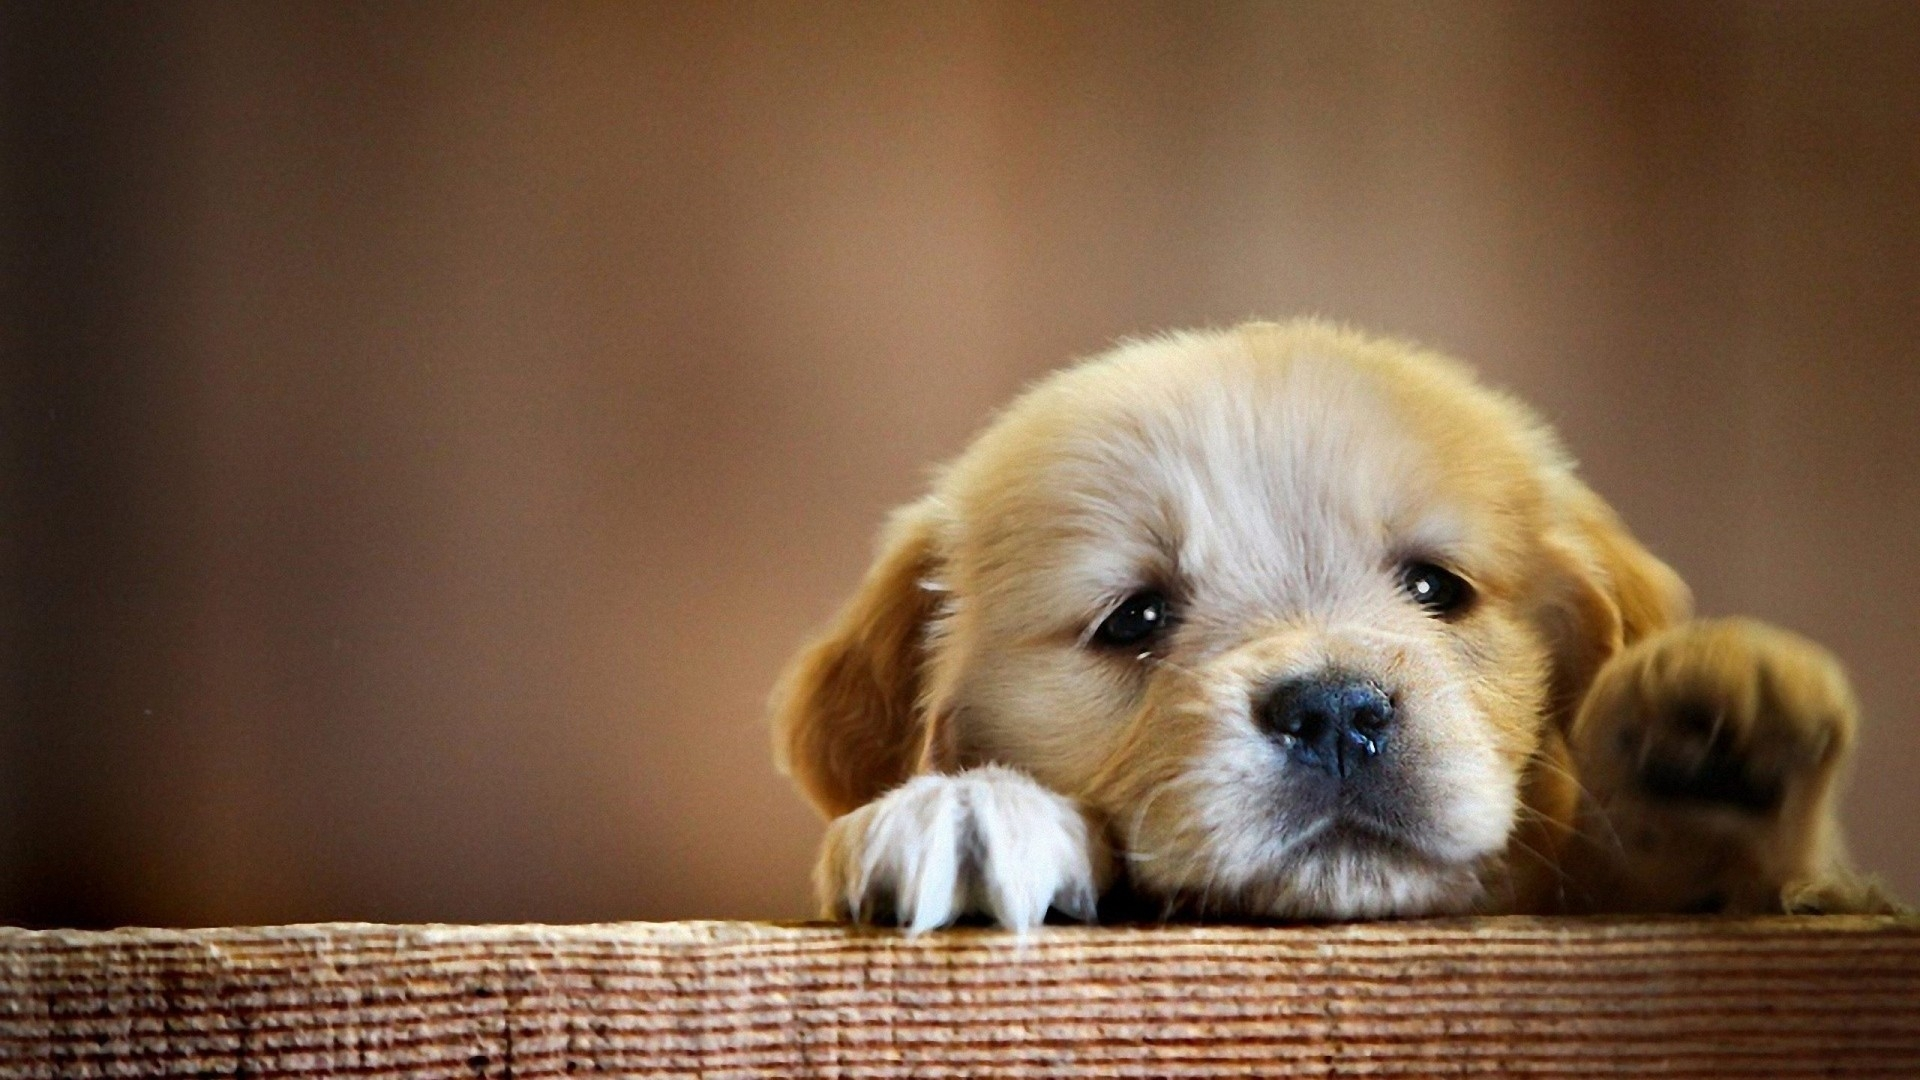 10 Most Popular Cute Puppy Wallpaper Hd FULL HD 1920×1080 For PC Background